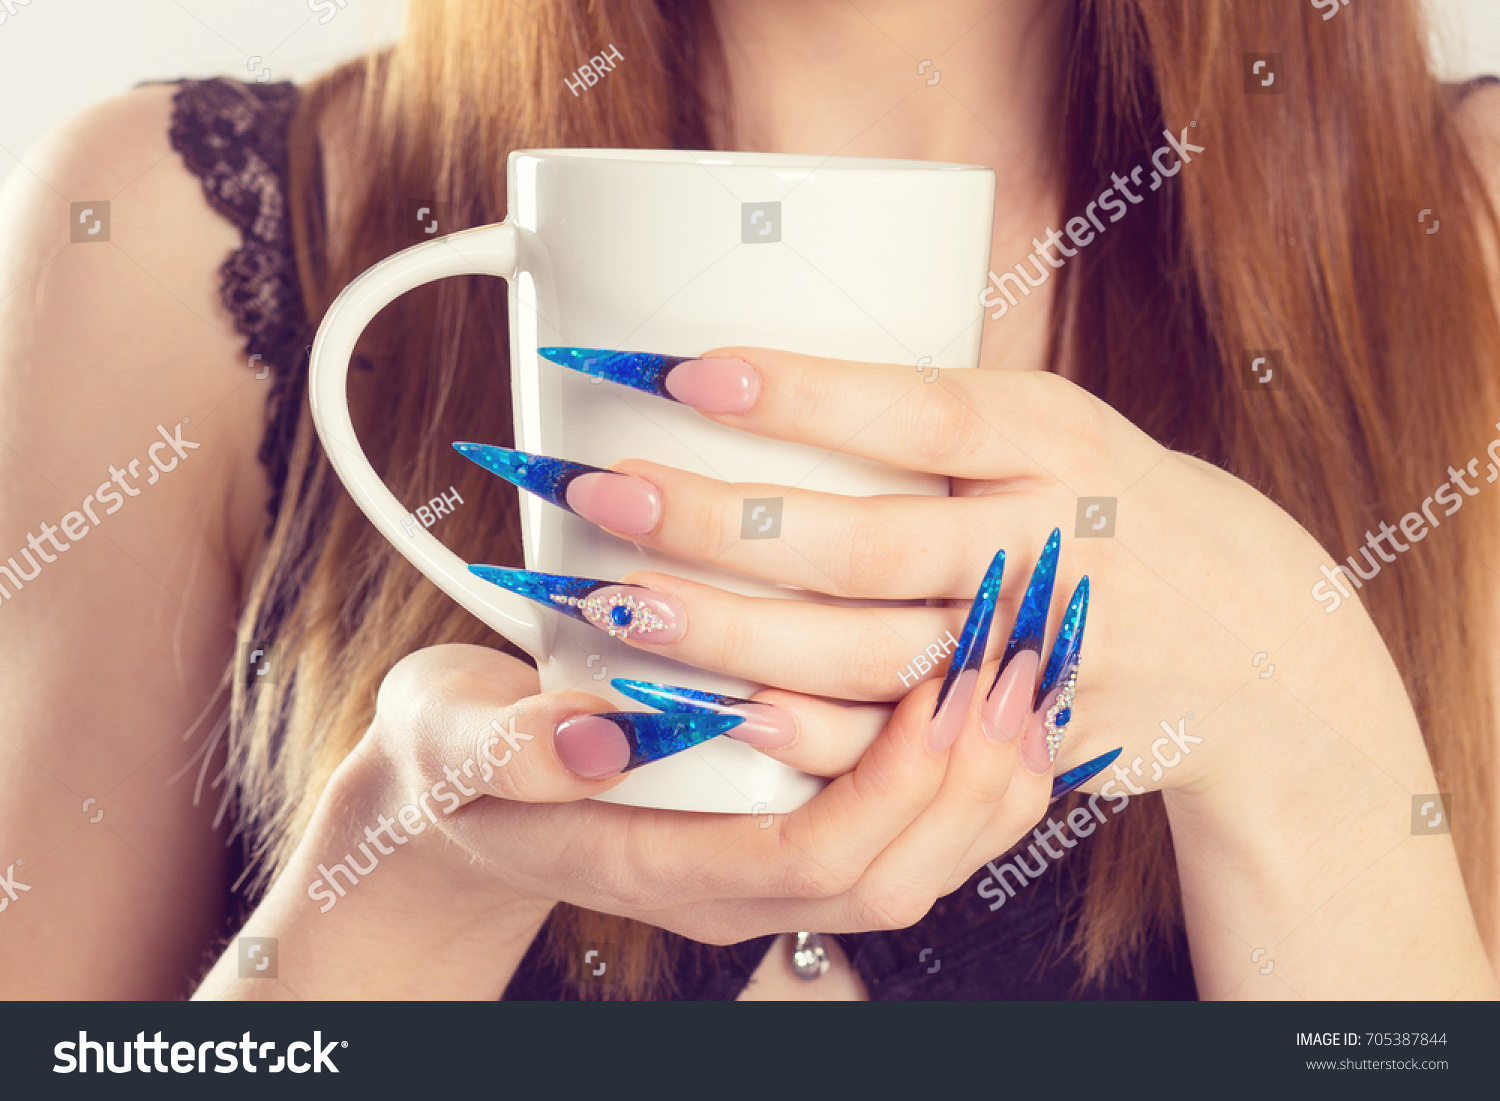 Nail Polish Modern Style New Trend Stock Photo (Edit Now)- Shutterstock